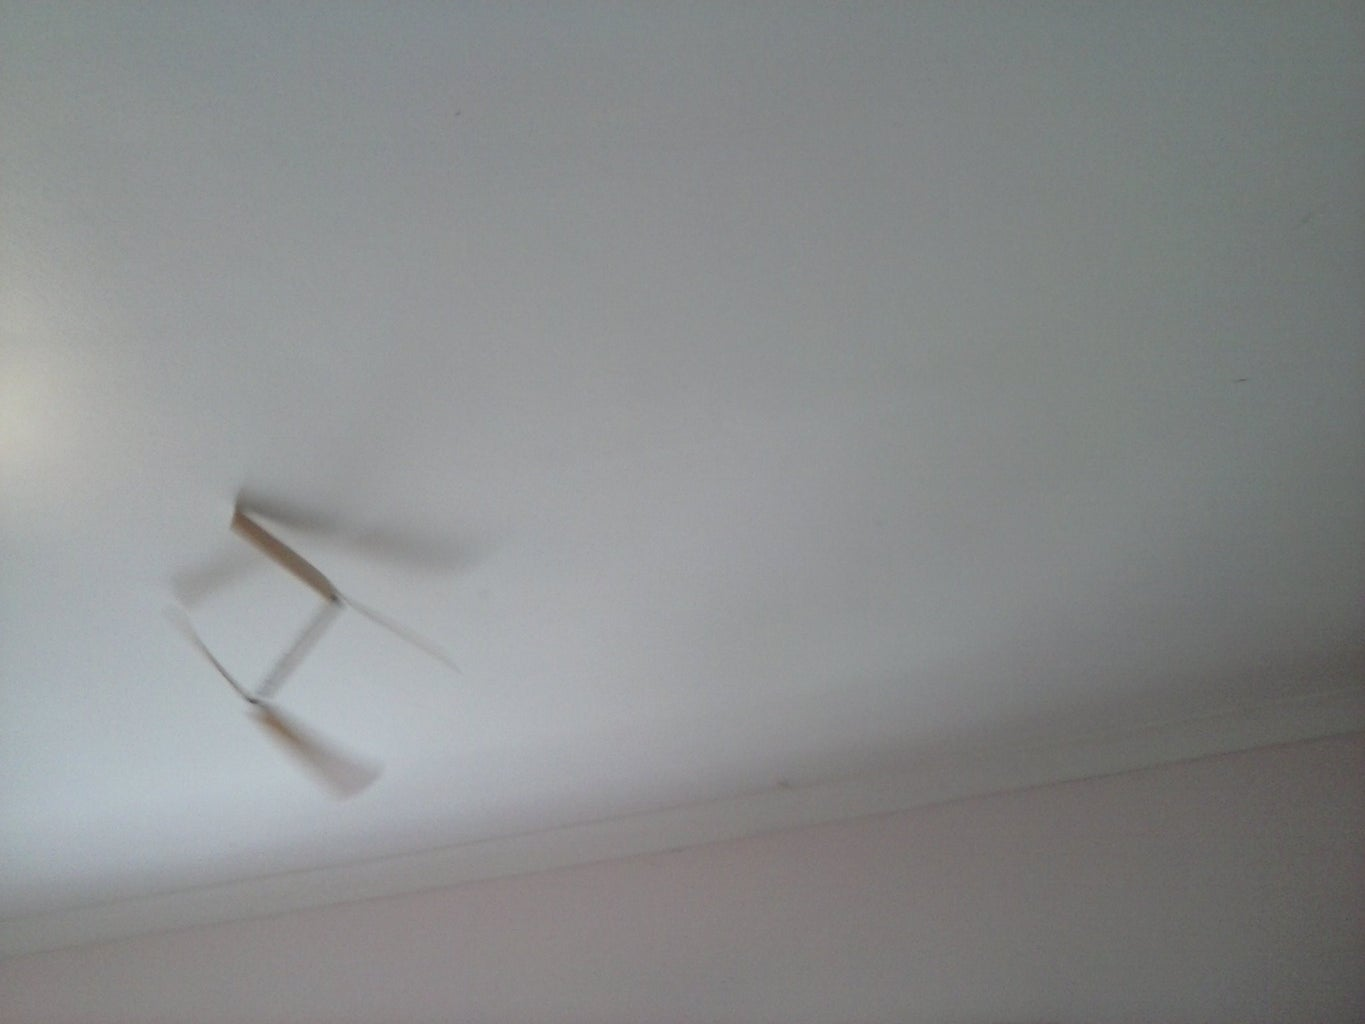 Fun Elastic Band Helicopter